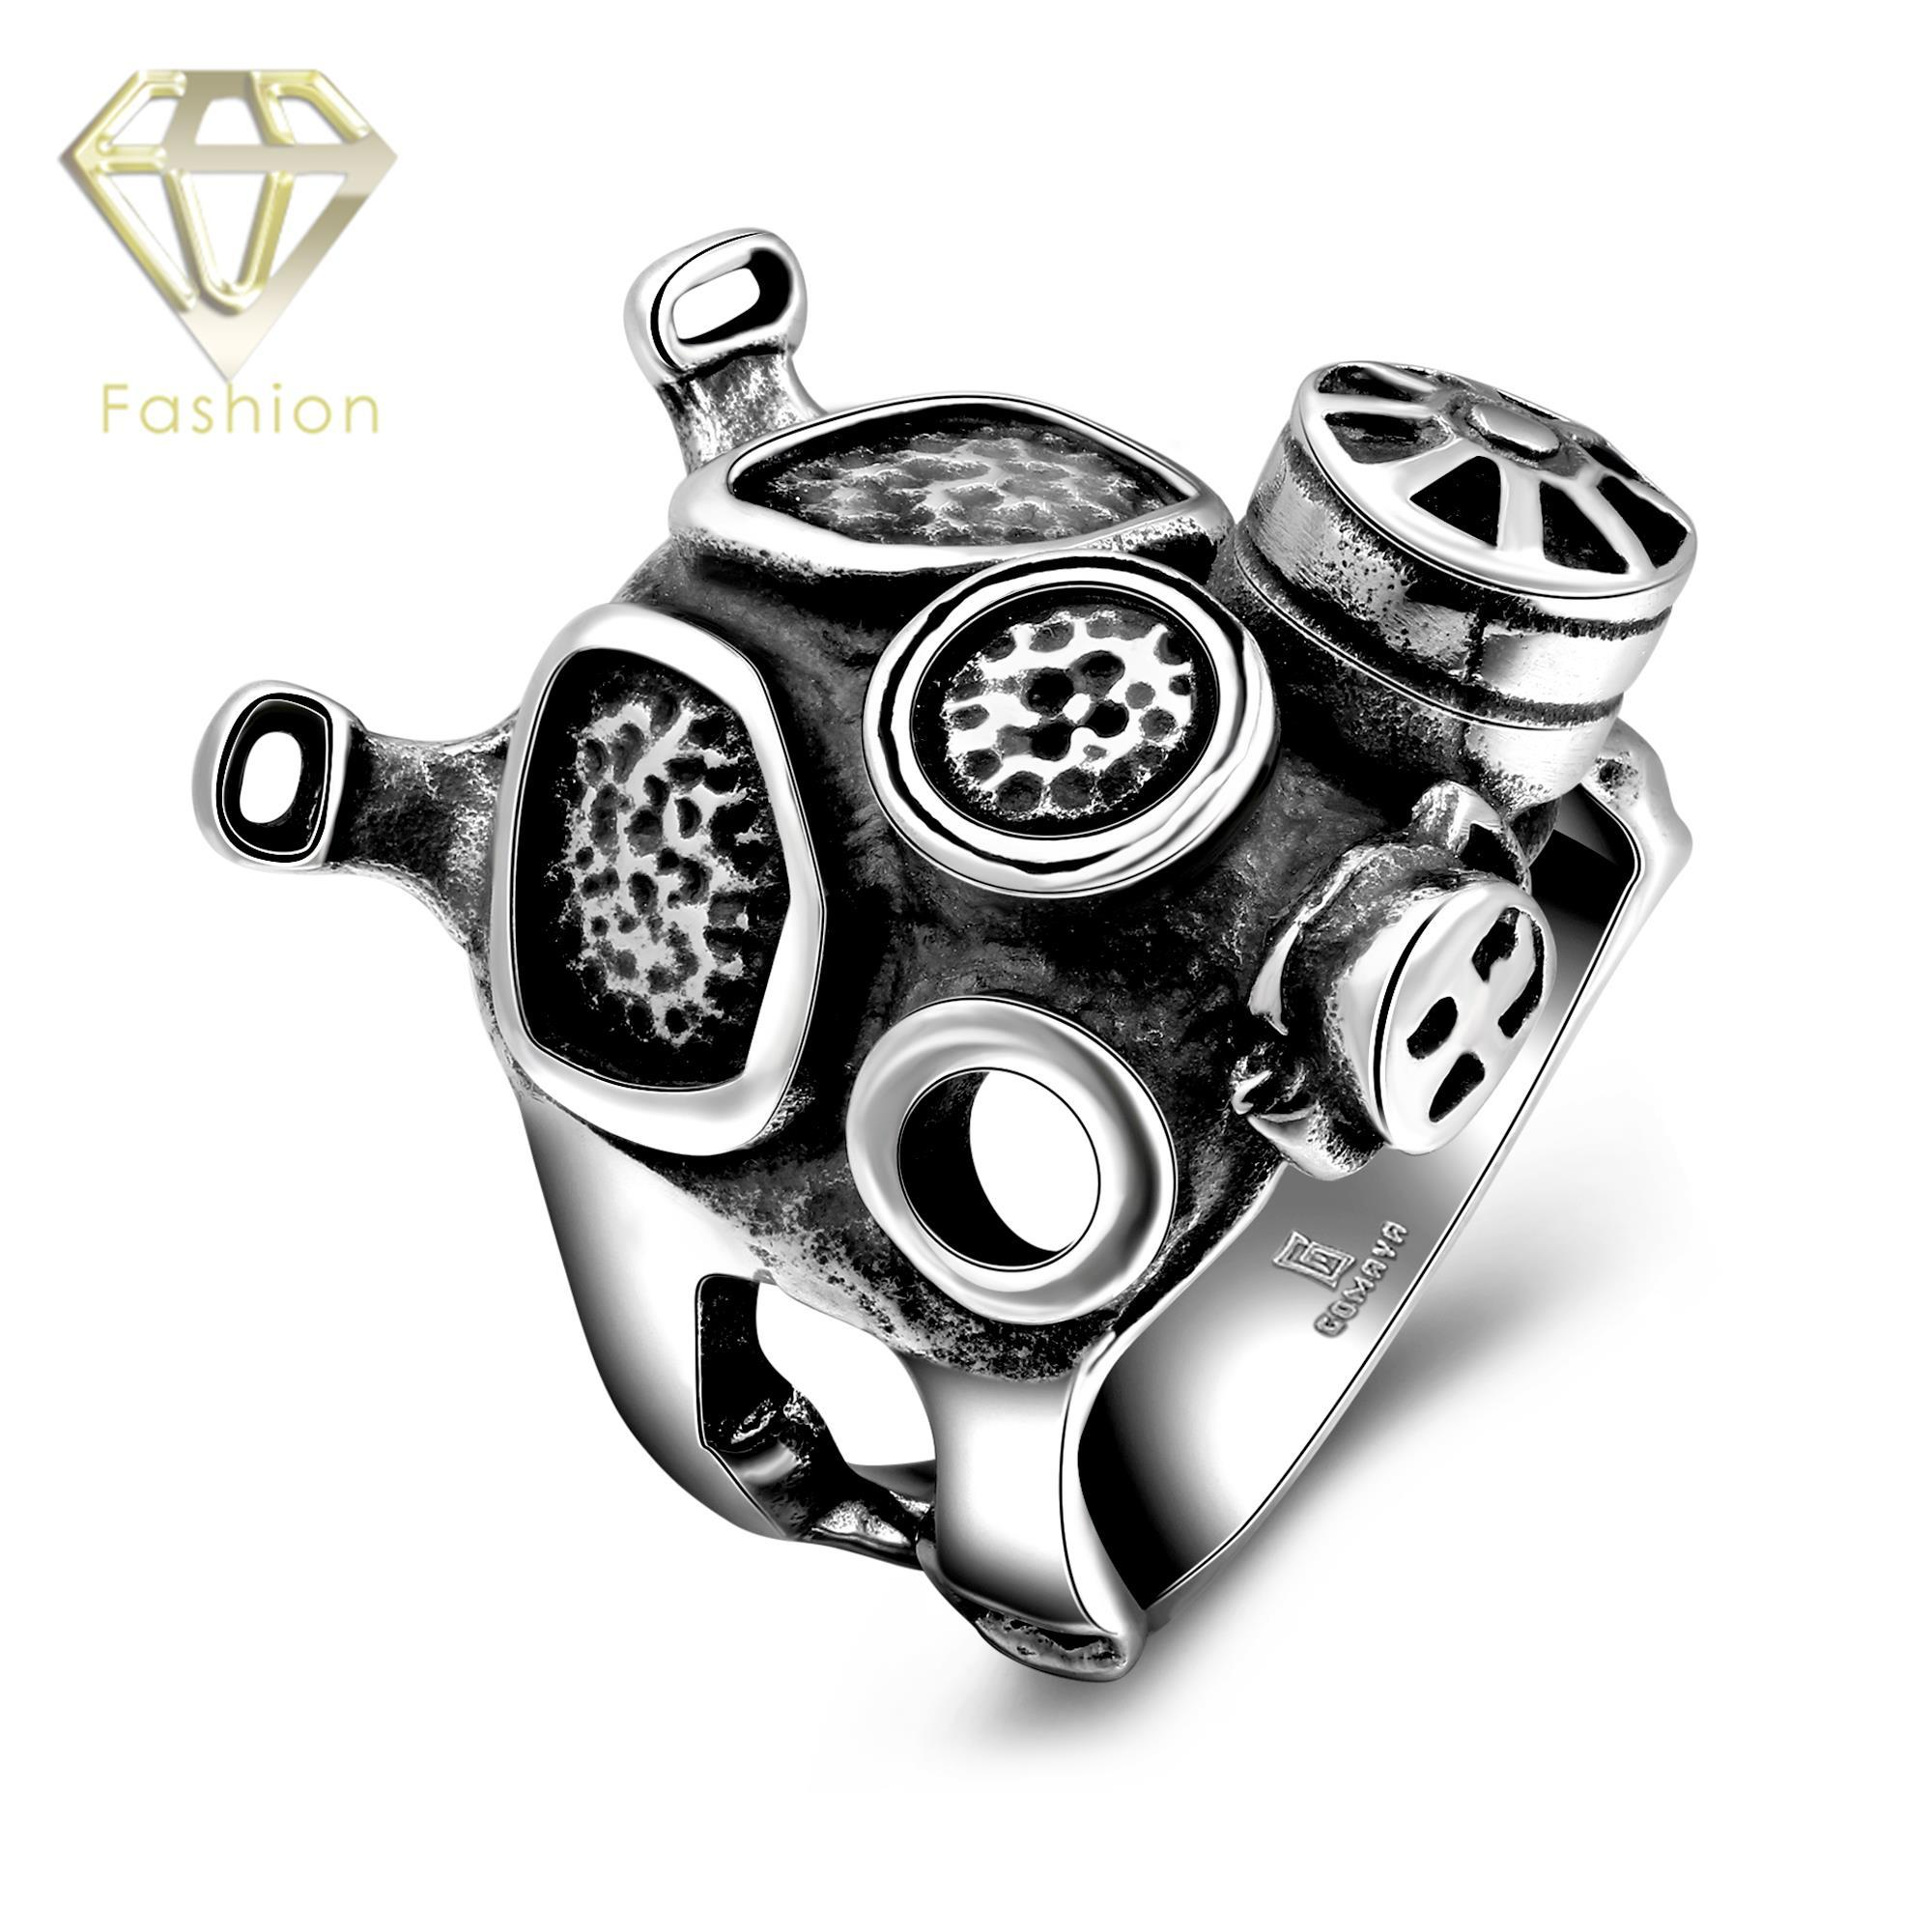 product from steel punk mask us vintage wholesale s design creative party weapons size rings rock jewelry stainless engagement skeleton men